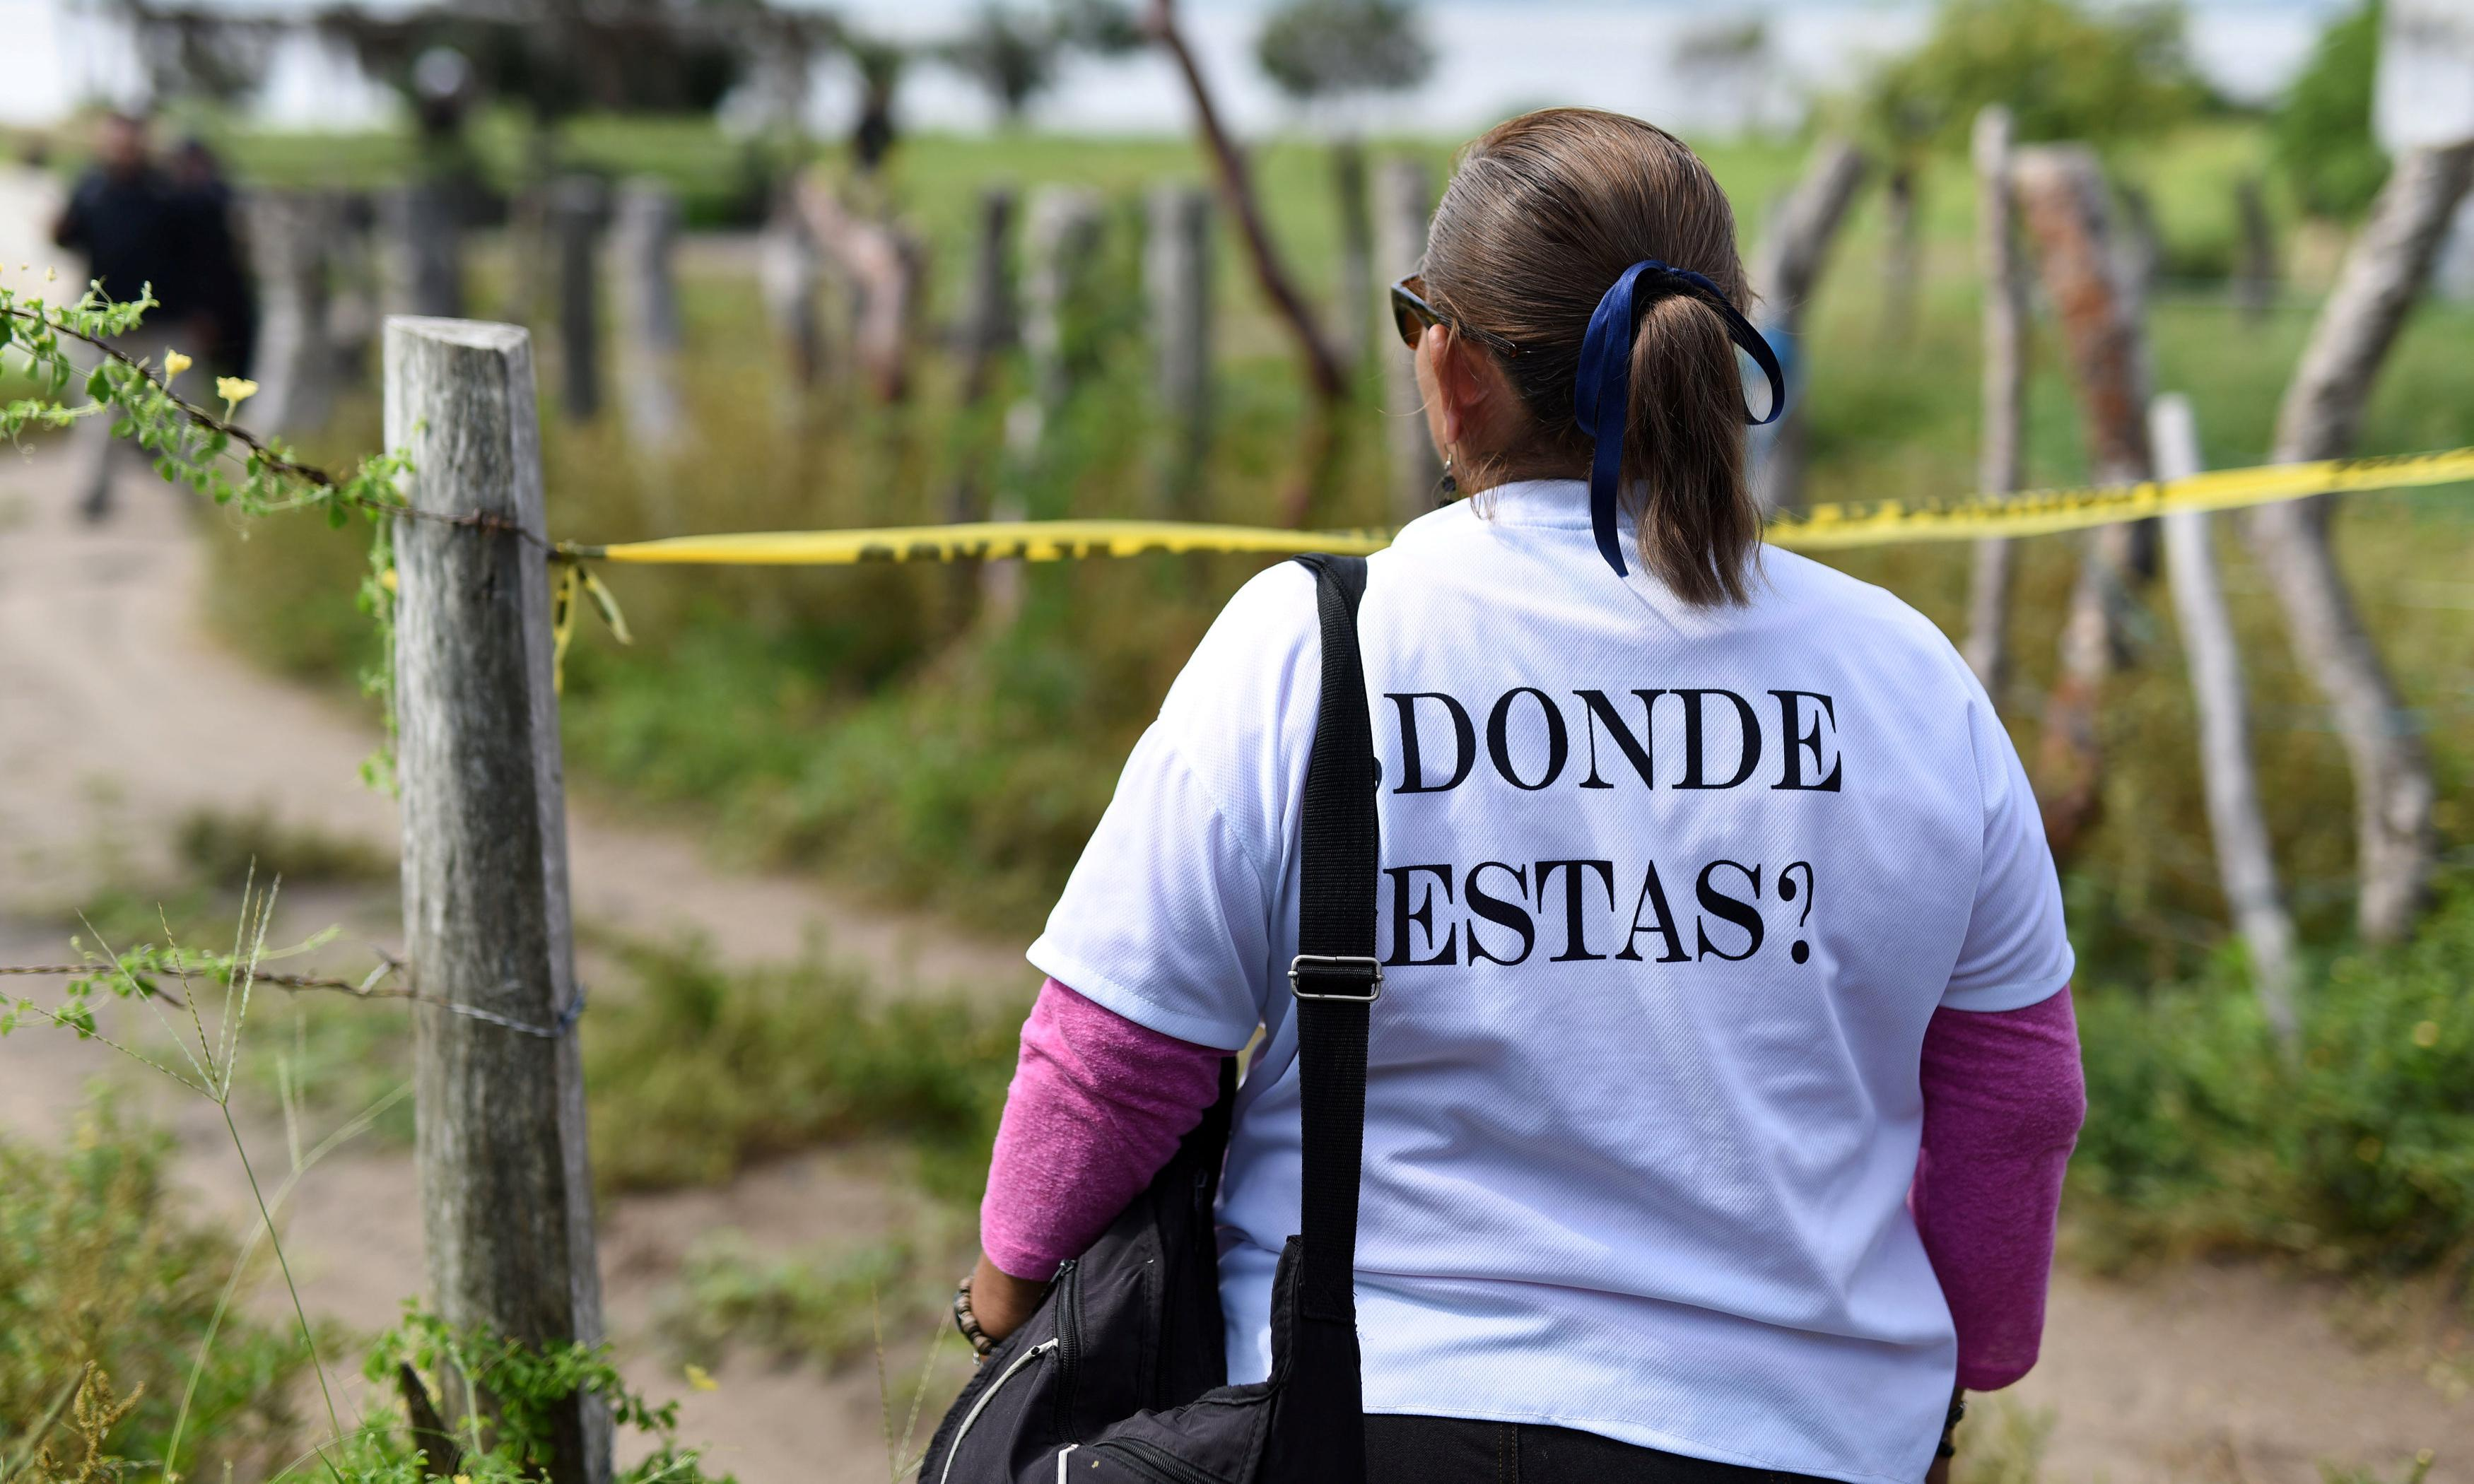 More than 6,600 children have gone missing in Mexico